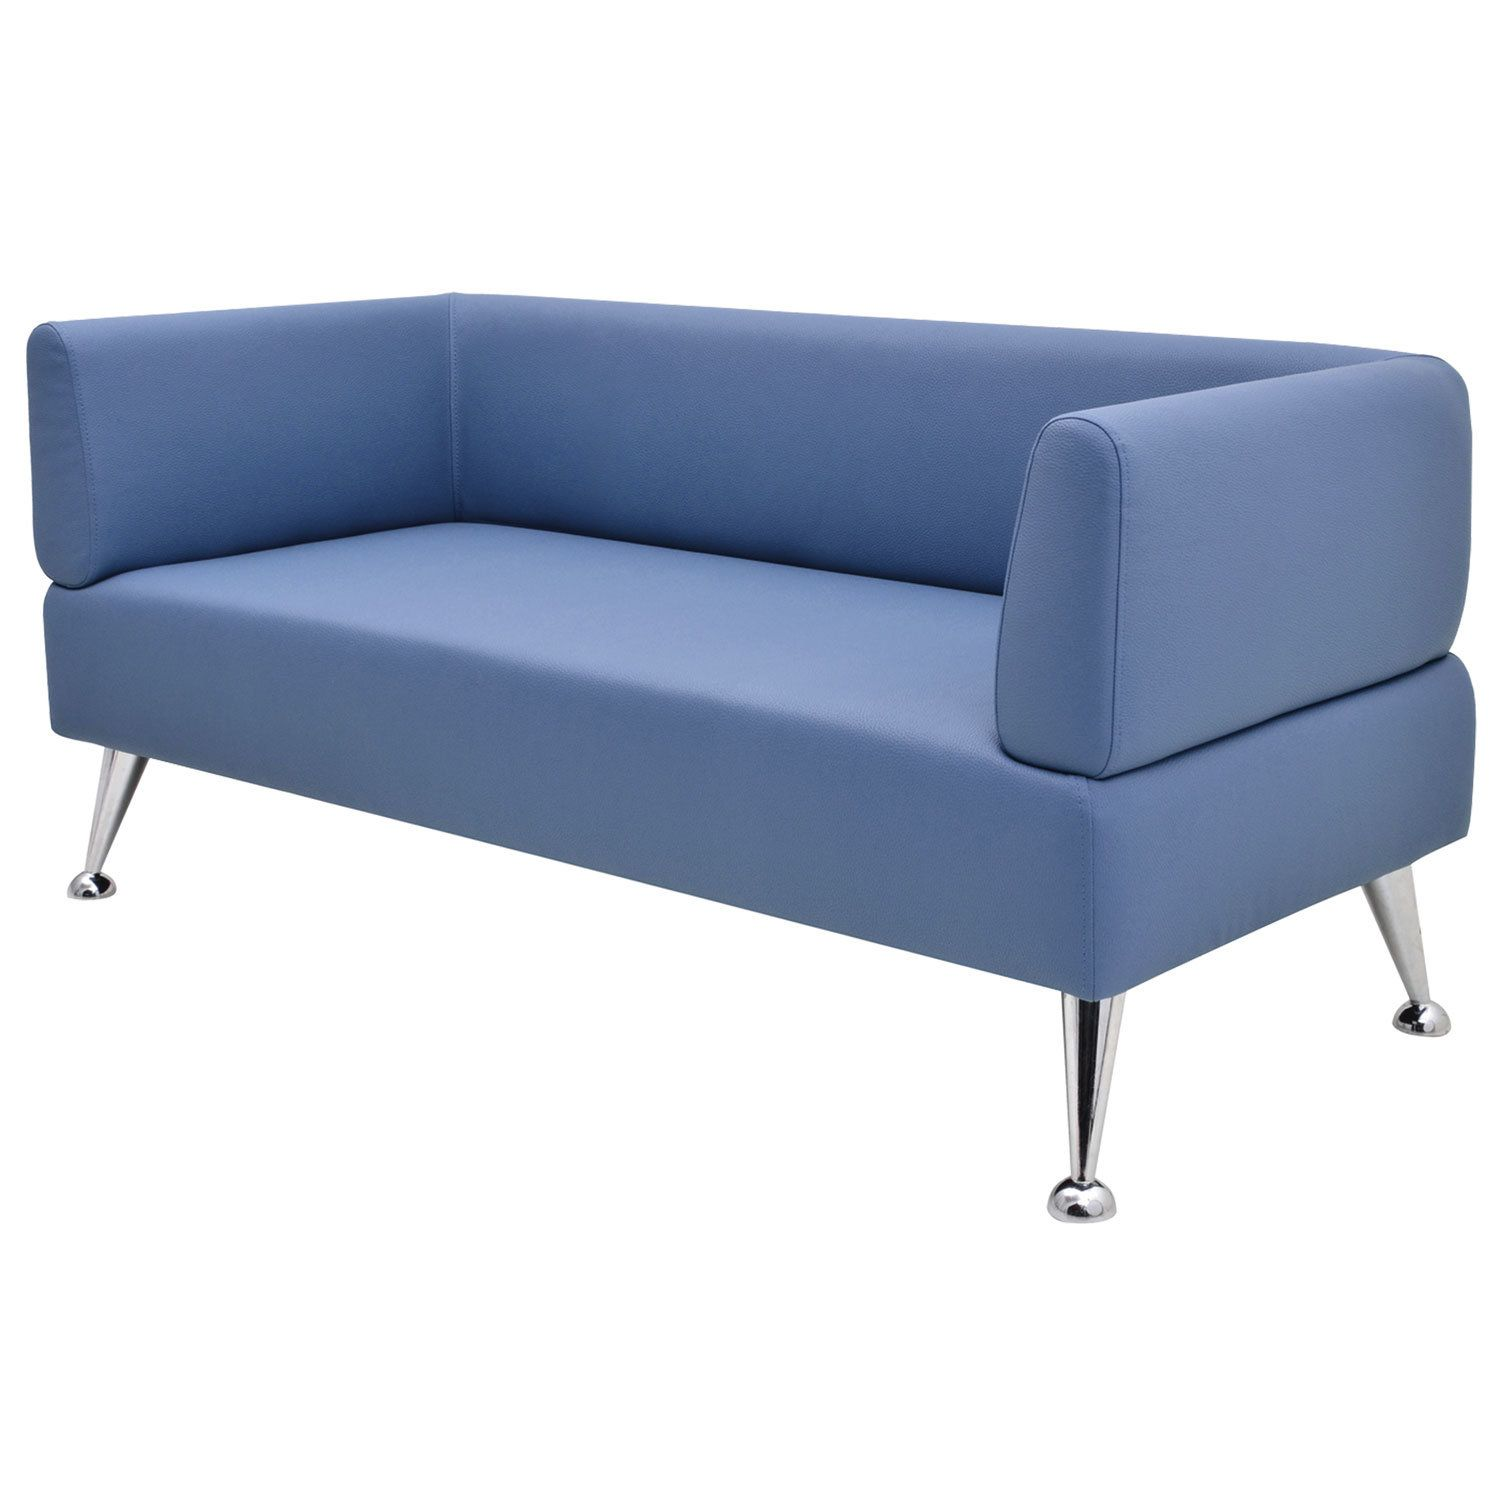 """GARTLEX / Sofa soft three-seater """"Nord"""", """"V-700"""", 1560x720x730 mm, with armrests, eco-leather, blue"""